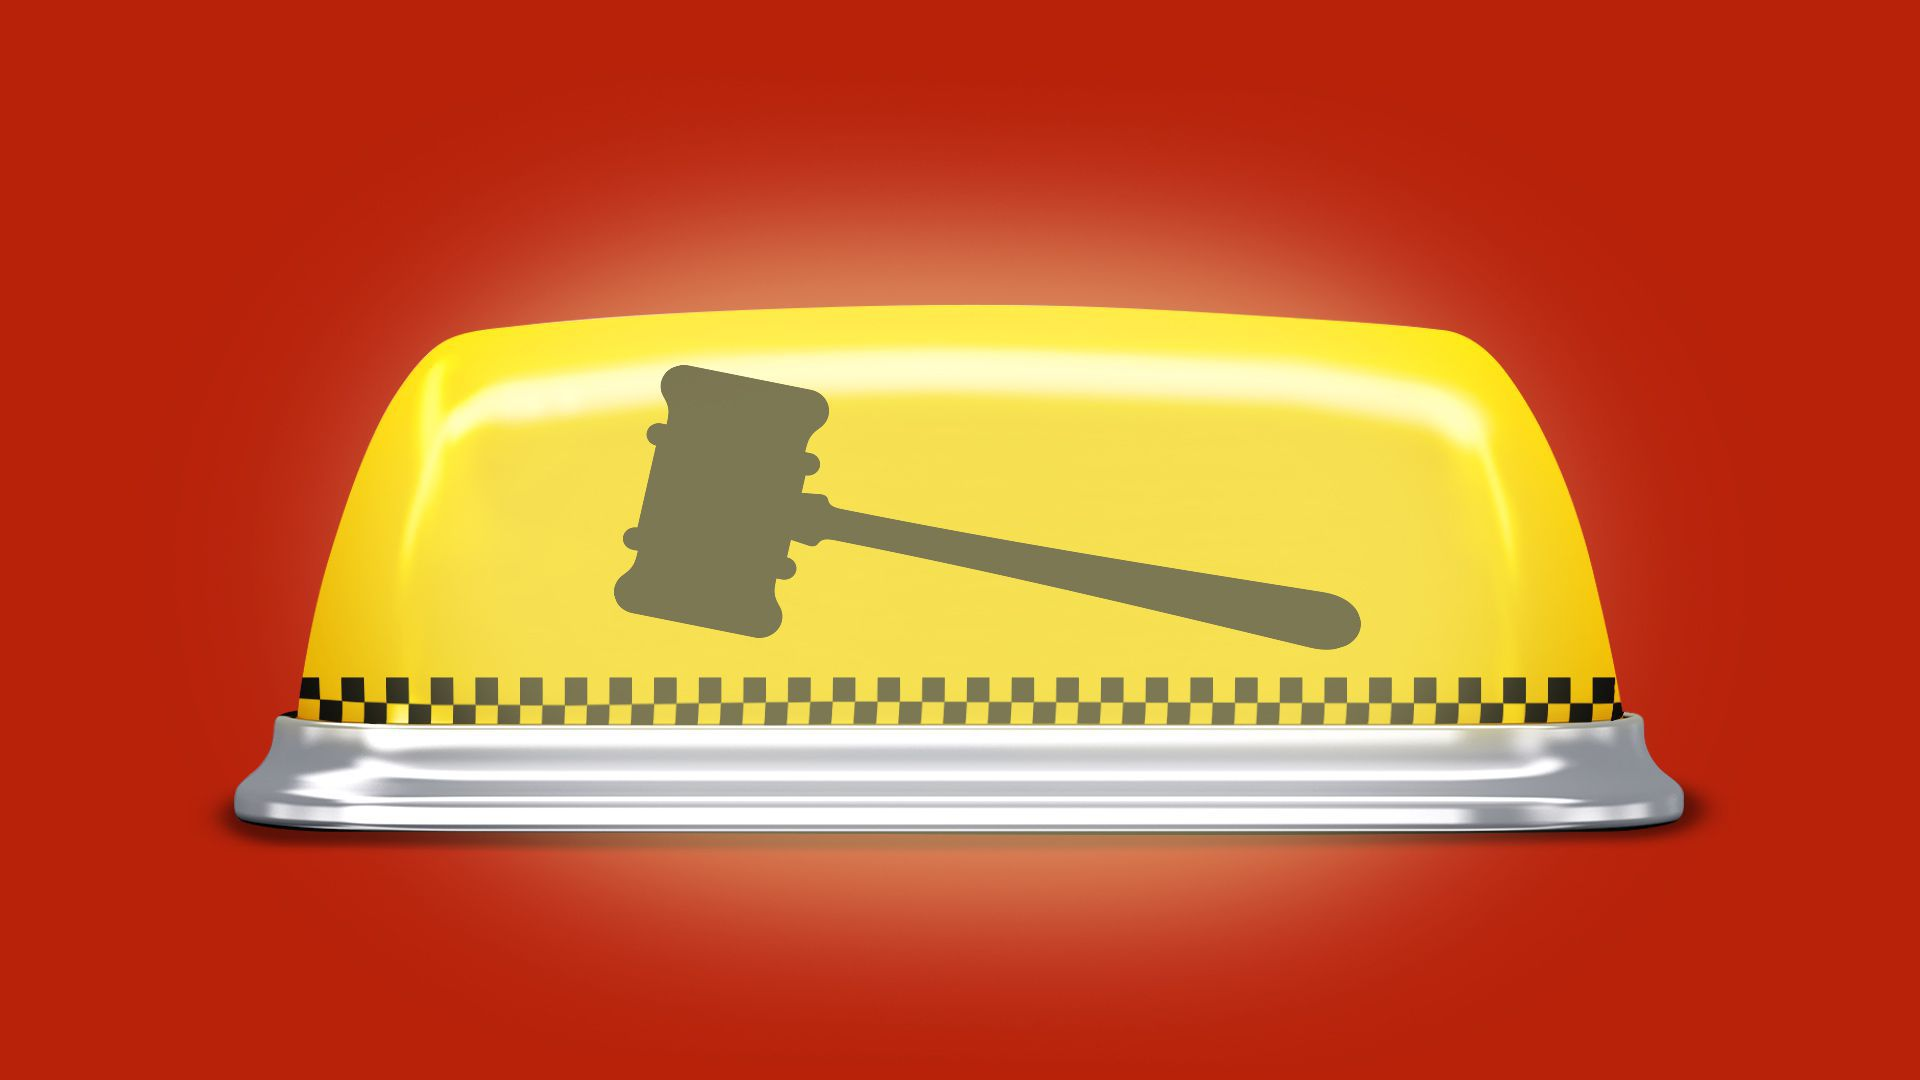 Illustration of a taxi rooflight stylized with a checker pattern and the outline of a gavel.